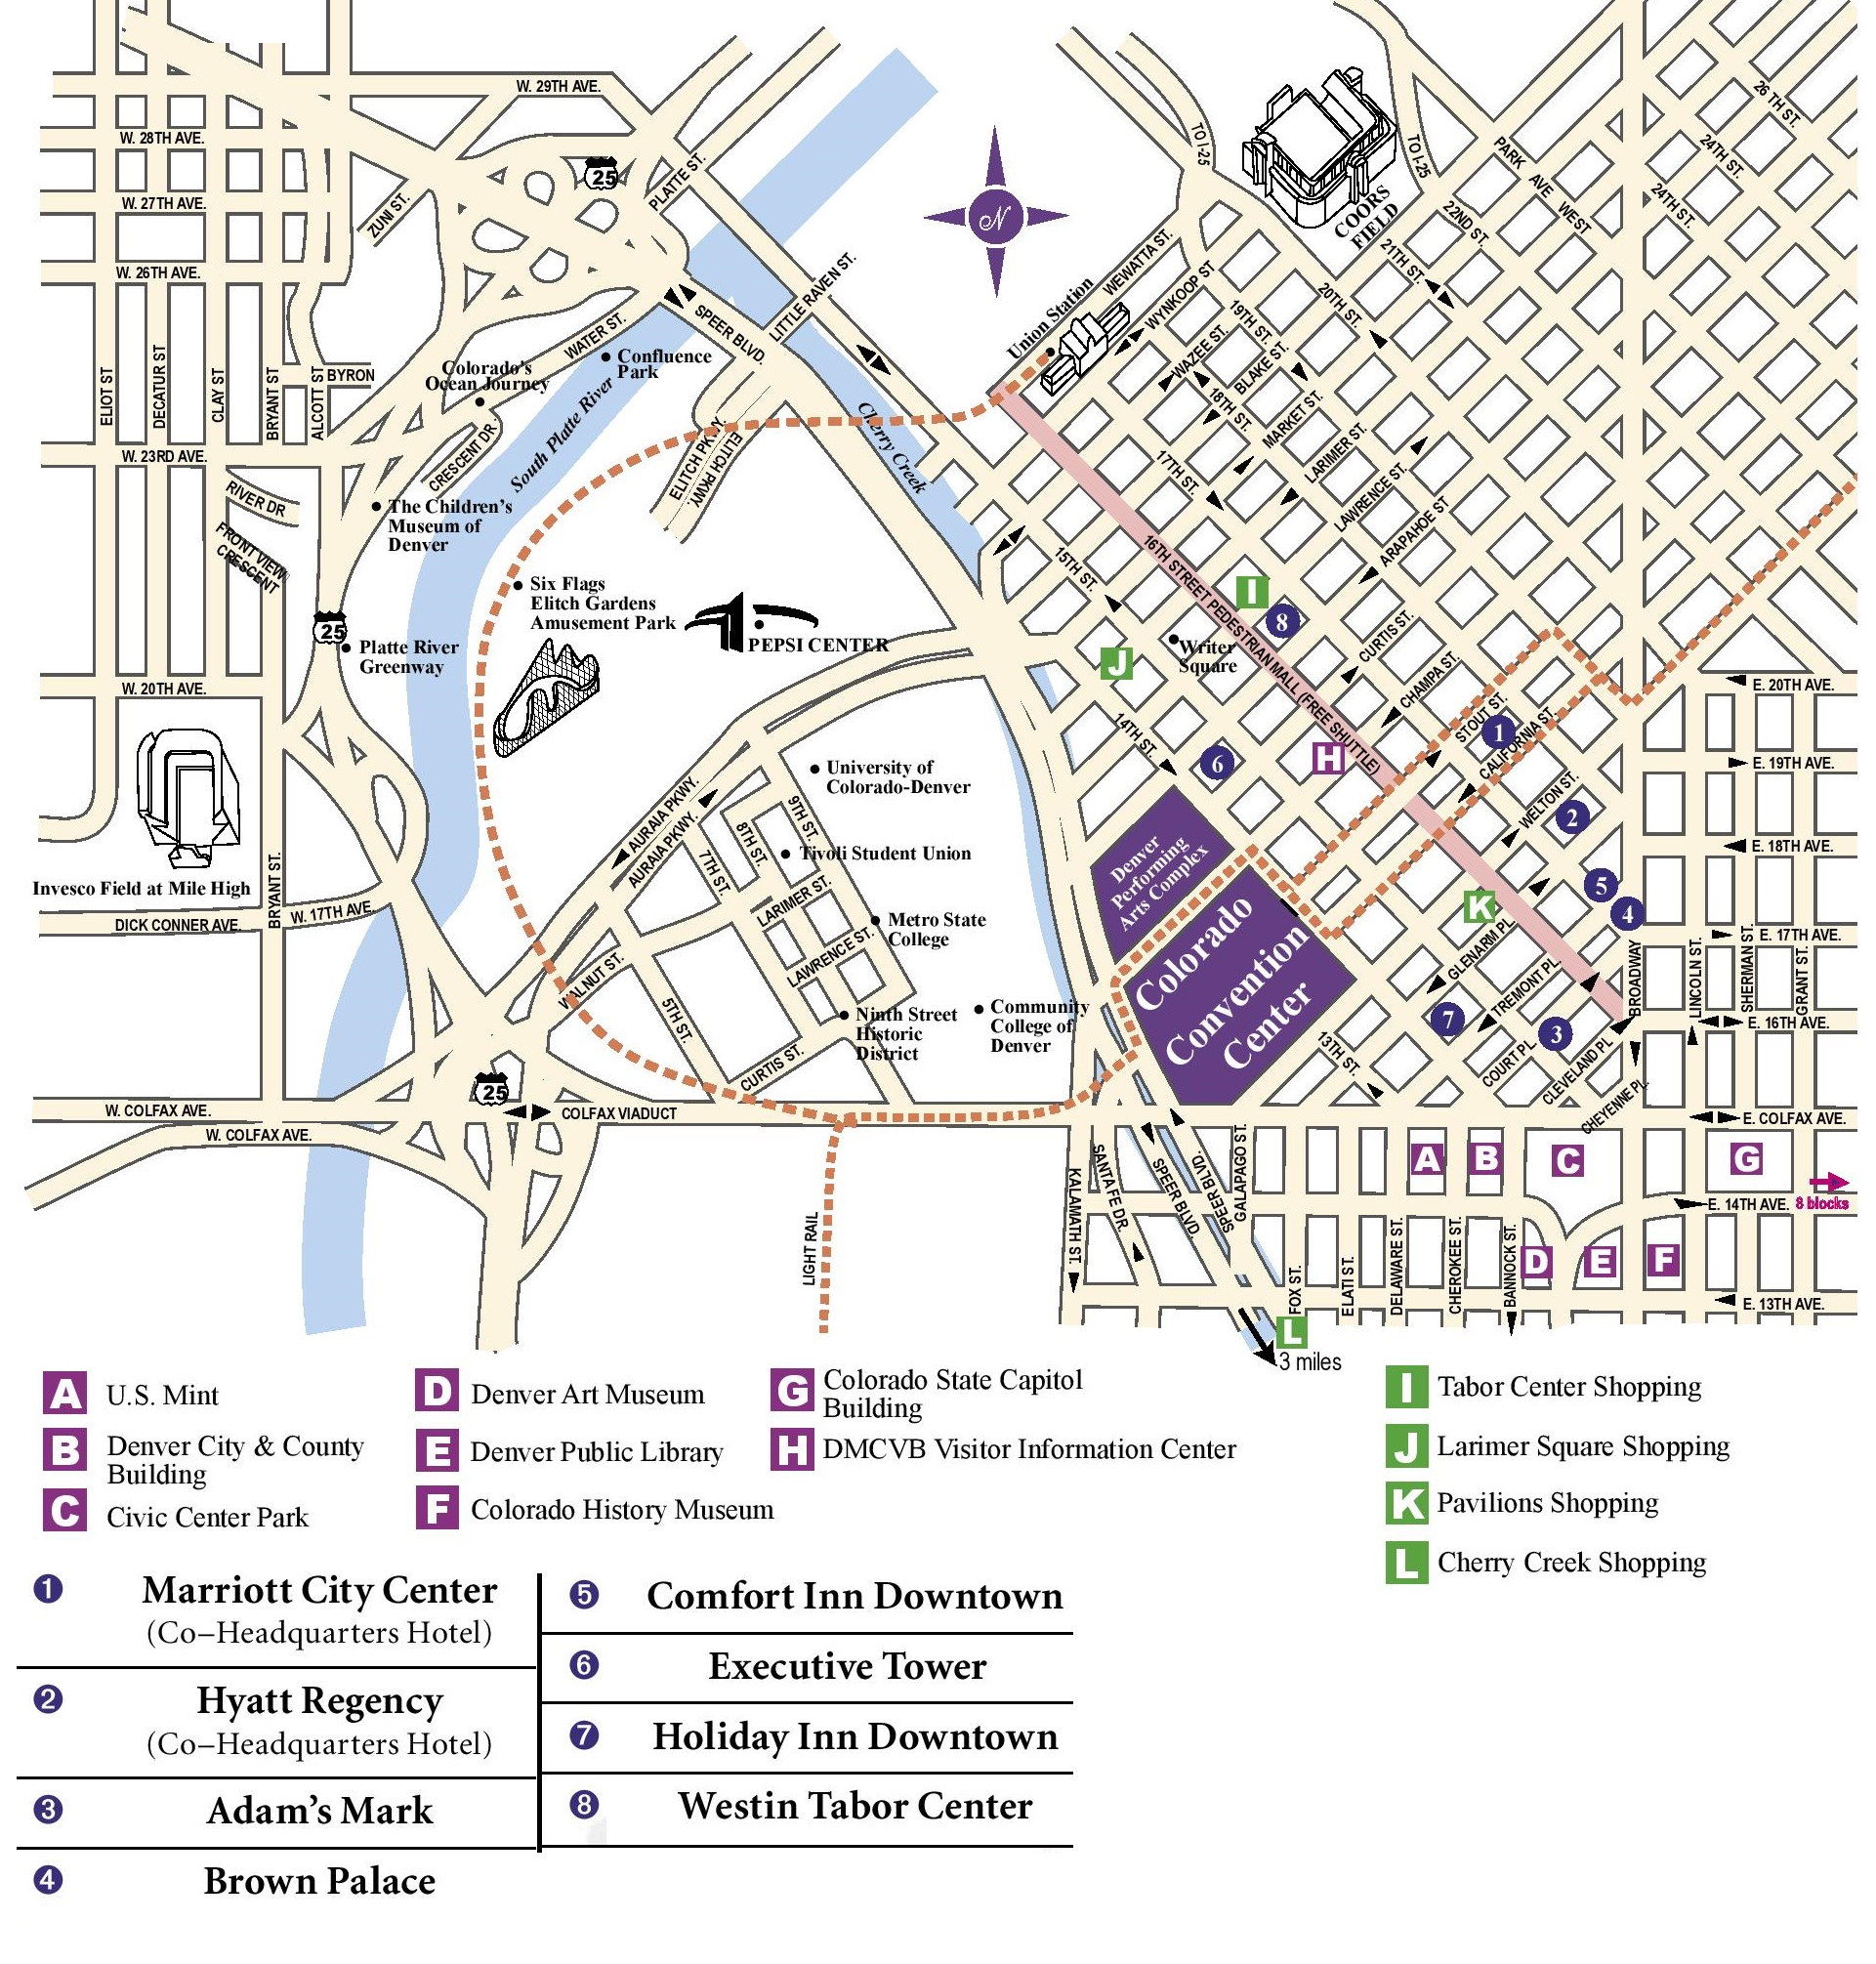 Denver downtown hotels map